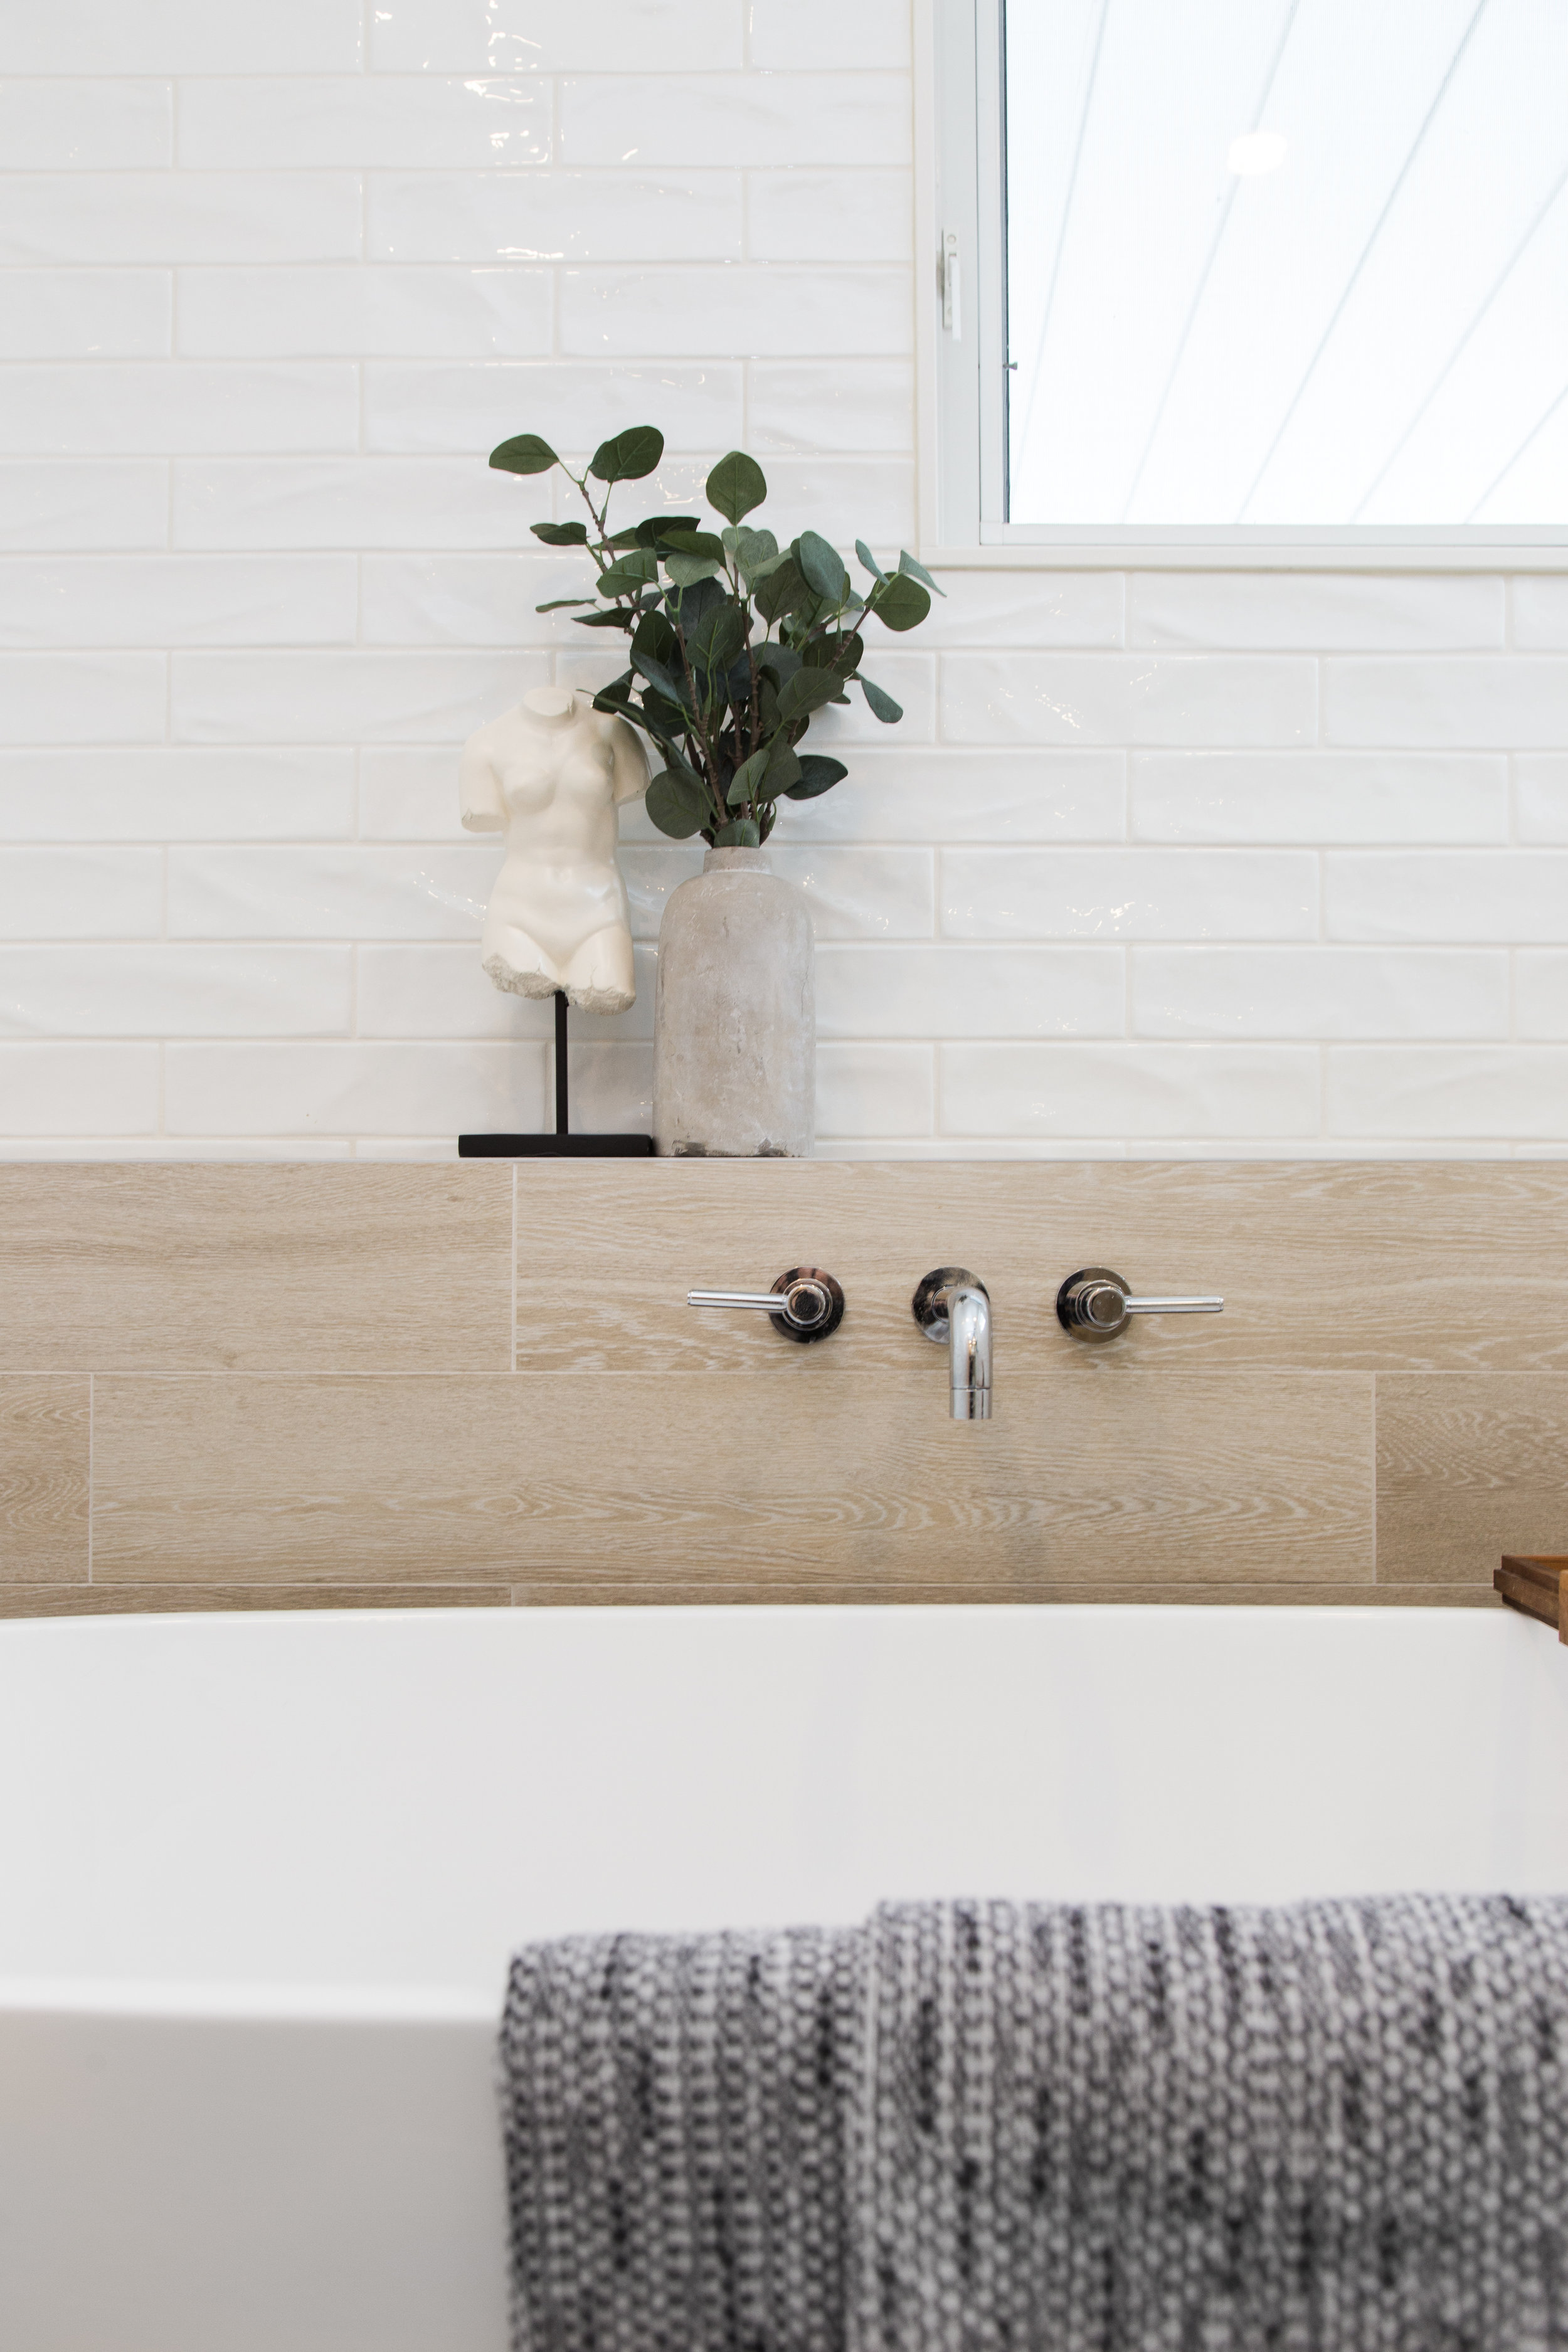 SpringdaleBathroomRenovation-2.jpg